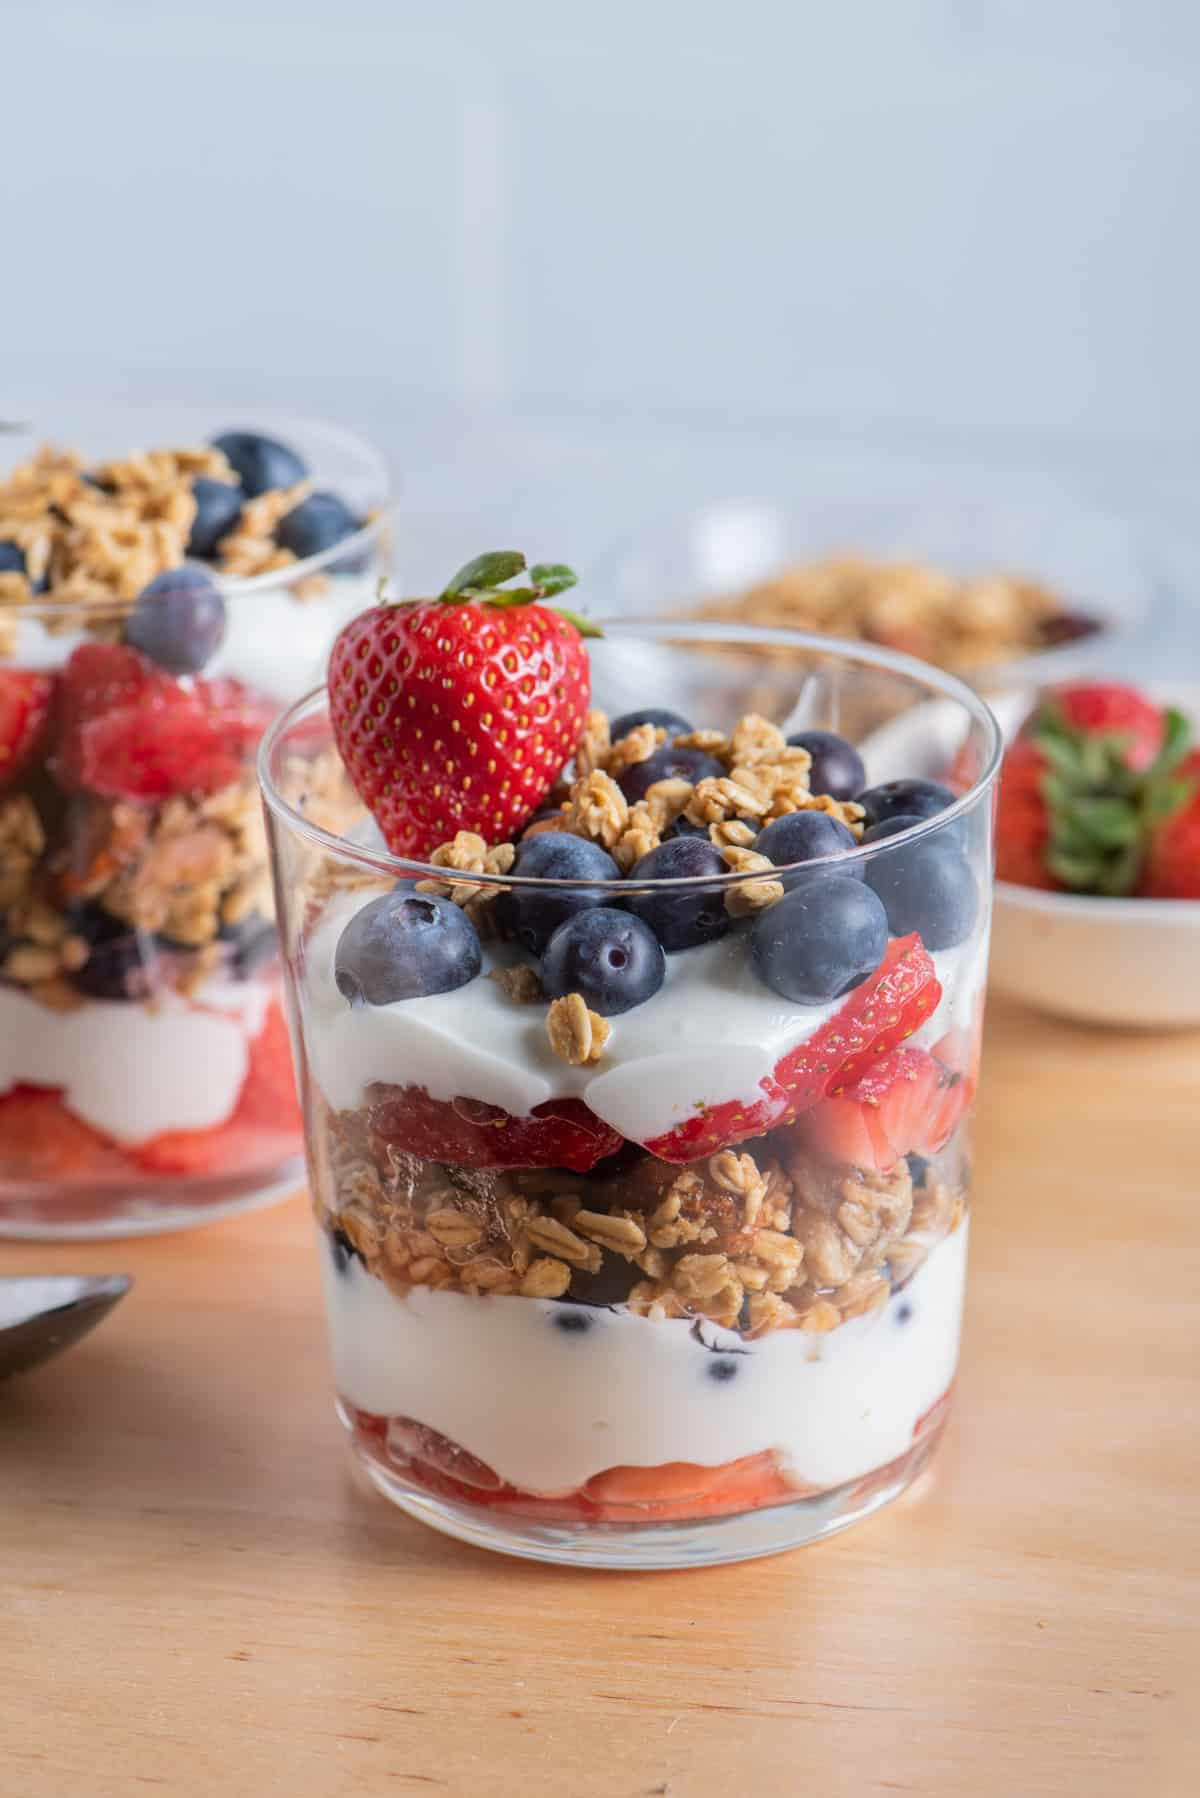 Cup of layered yogurt and fruit parfait with red, white and blue layers including strawberries and blueberries